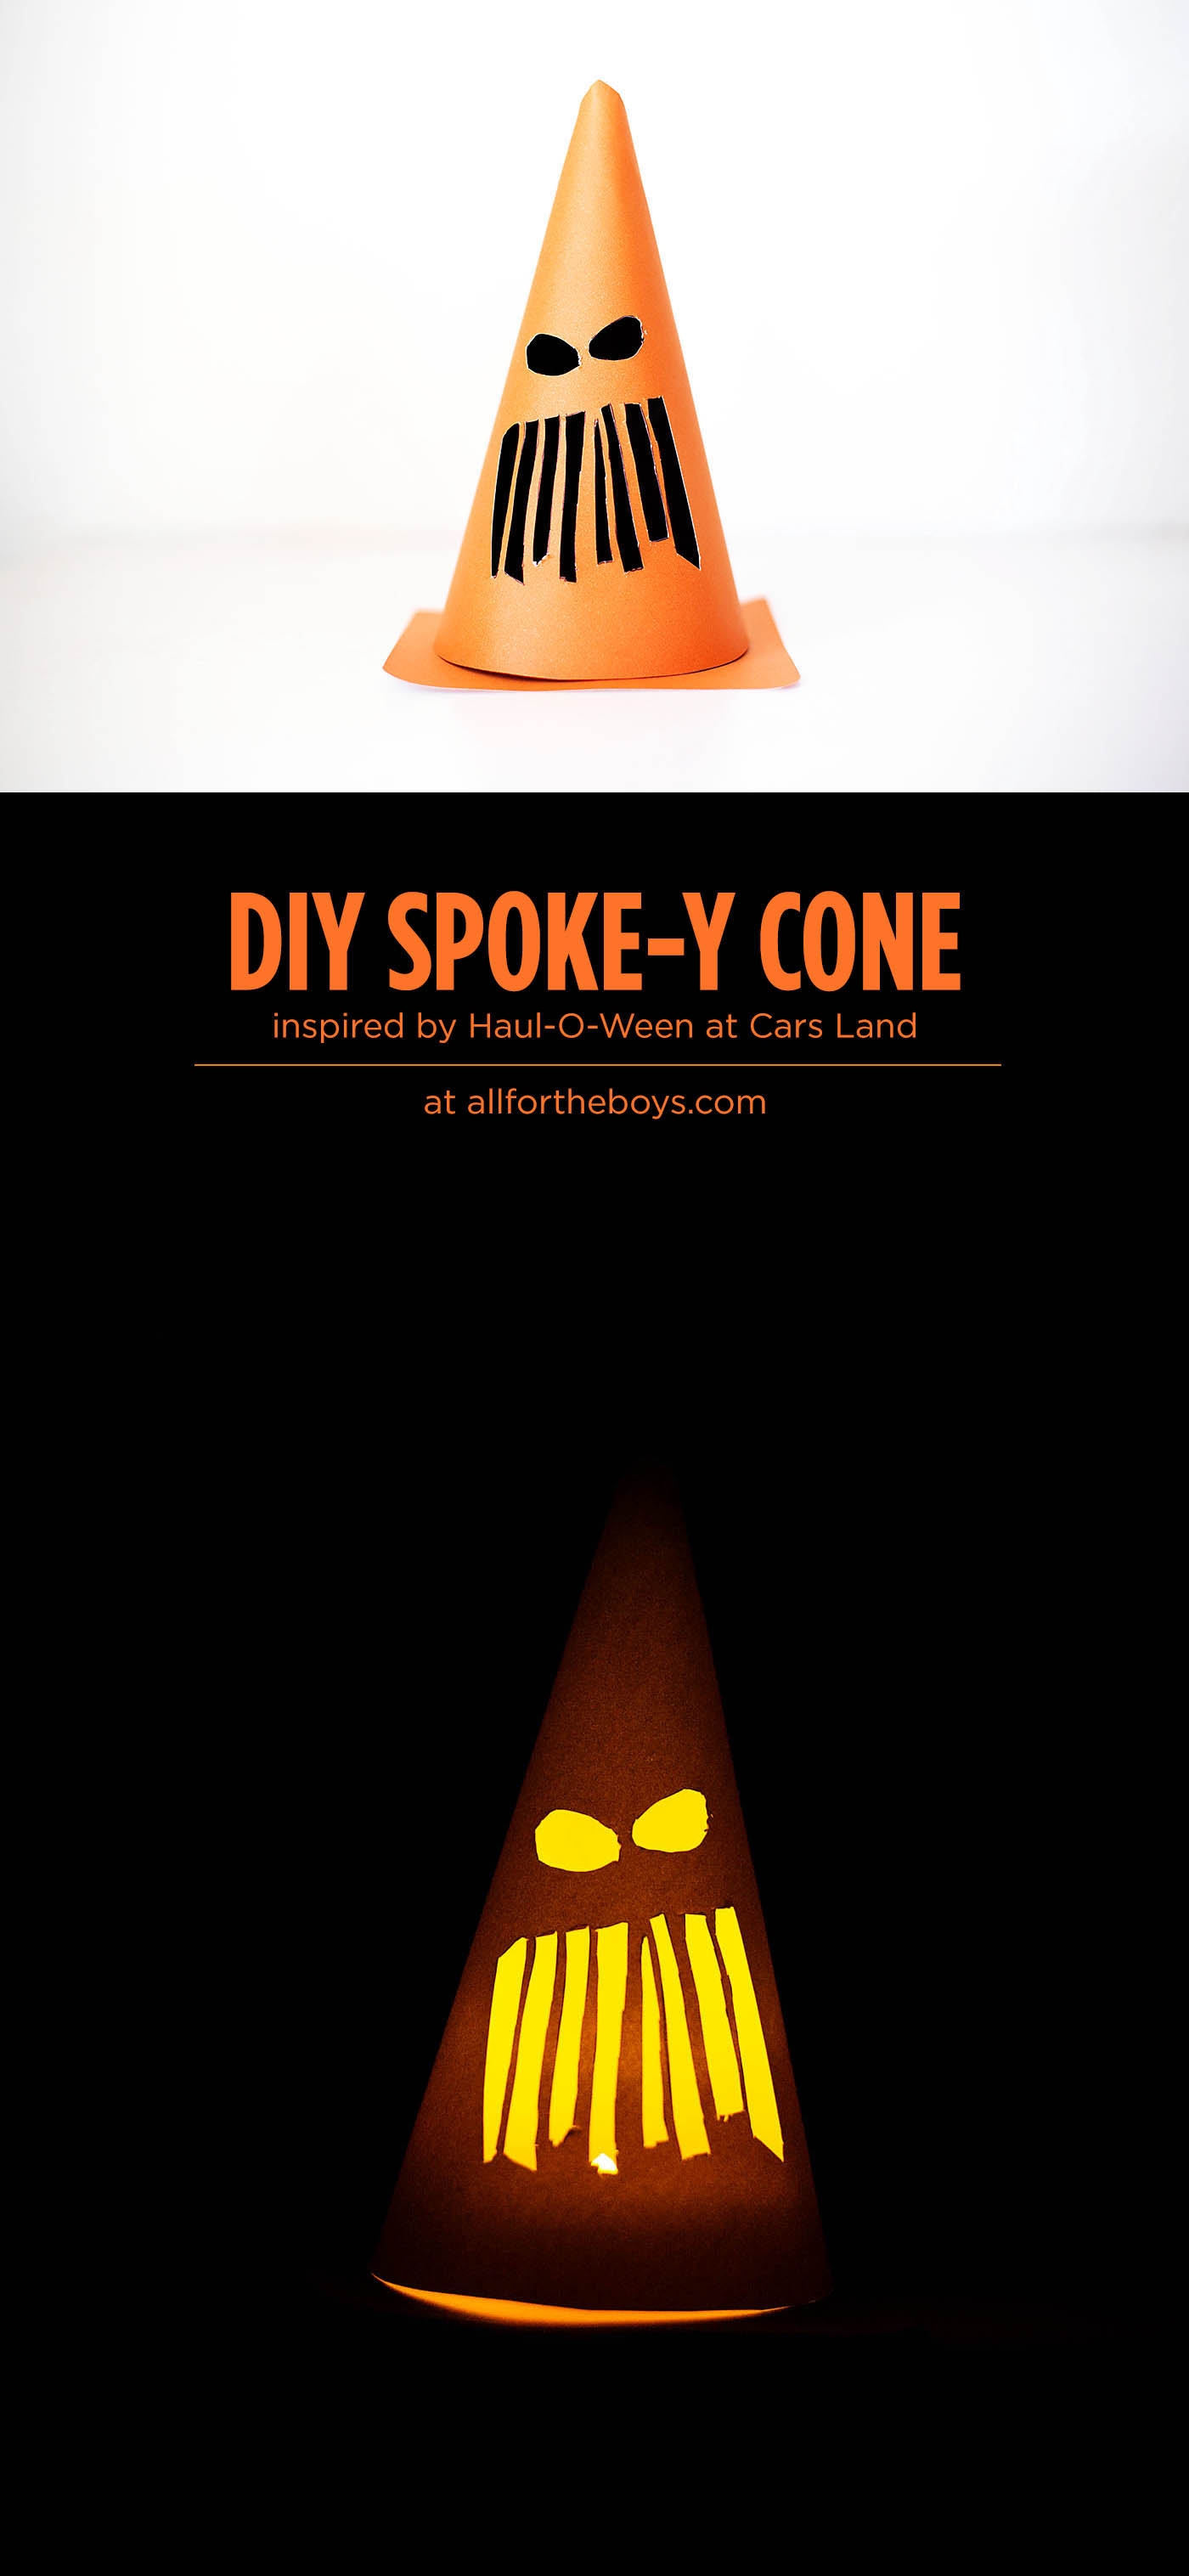 DIY Spoke-y Cone inspired by Haul-O-Ween at Cars Land in Disneyland!